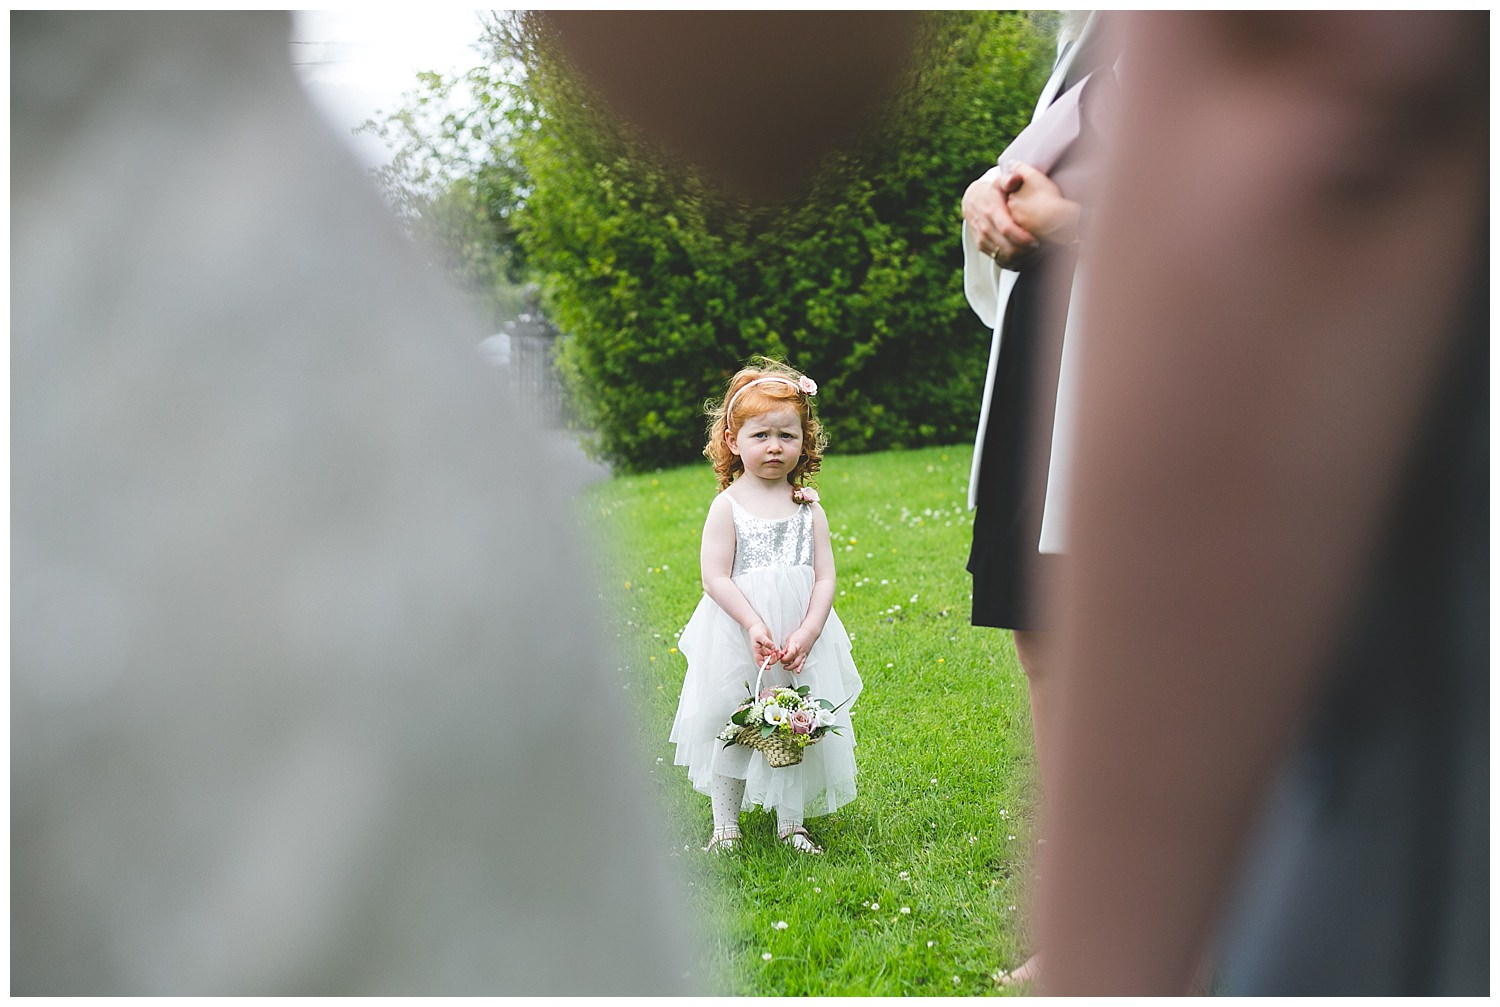 Candid shot of a cure flower girl